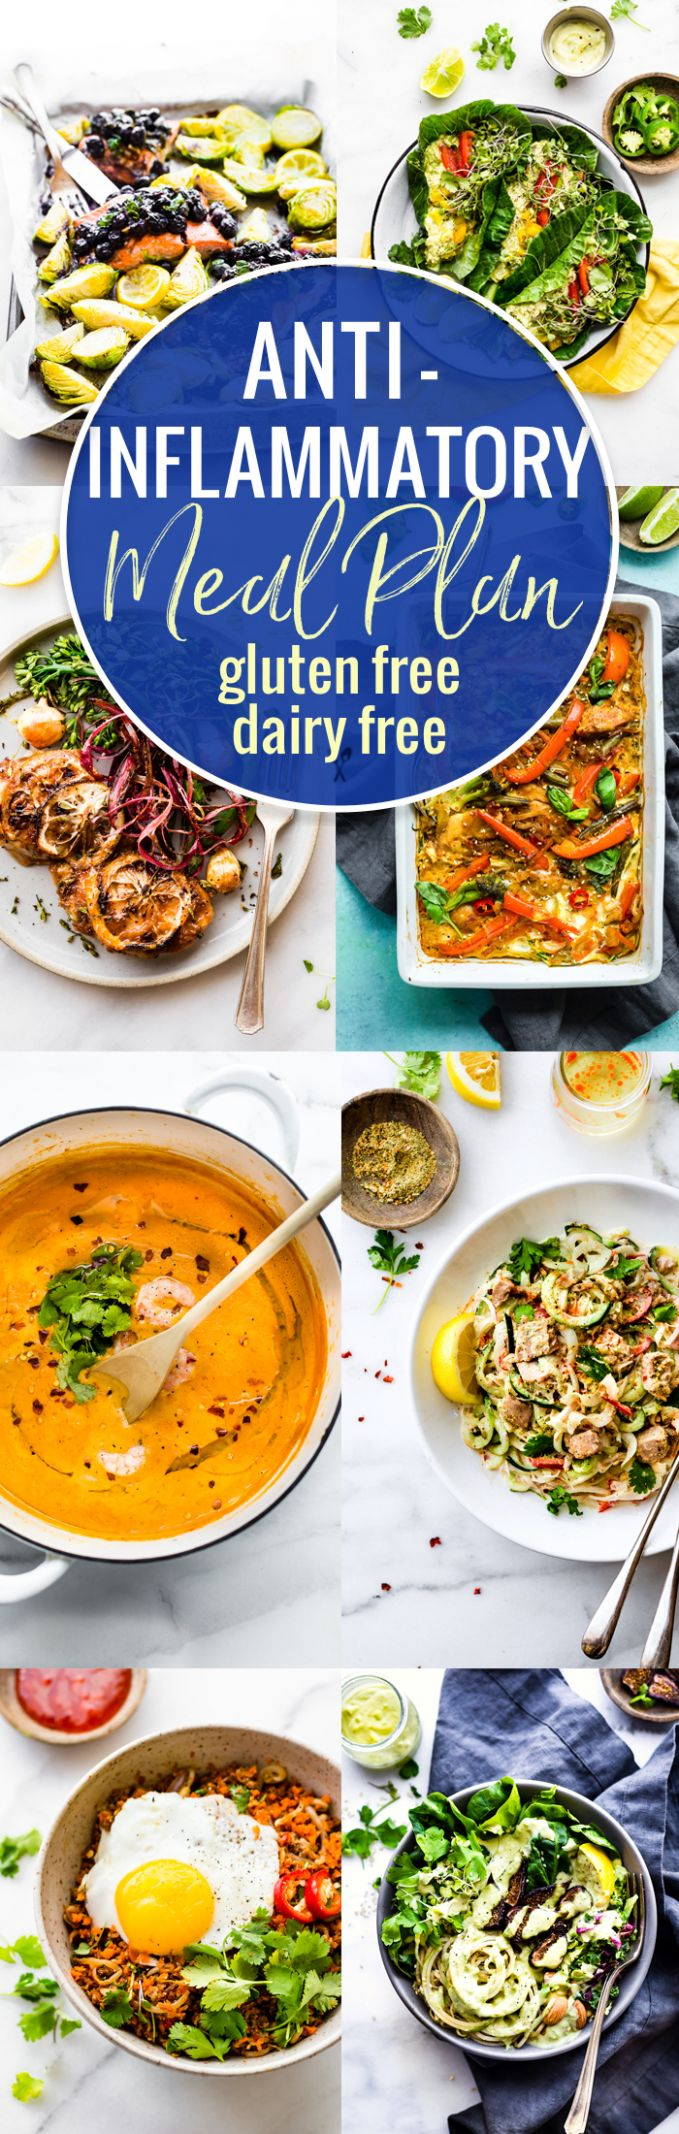 Anti-Inflammatory Meal Plan of Dairy-Free and Gluten-Free Recipes - Breakfast Recipes Dairy And Gluten Free